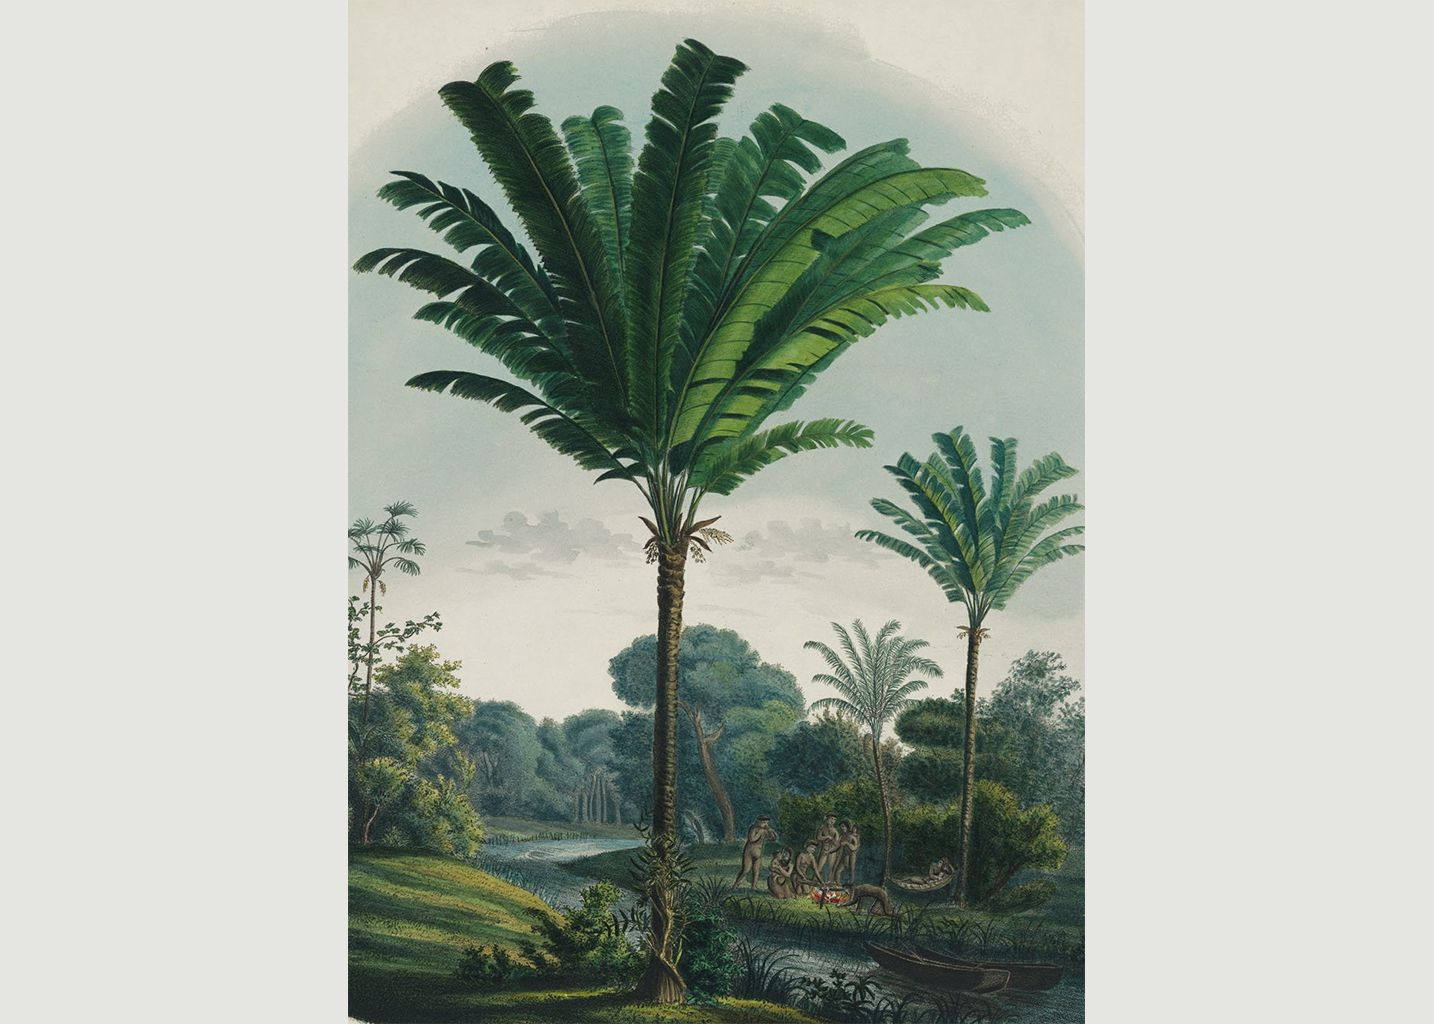 The Book Of Palms - Taschen